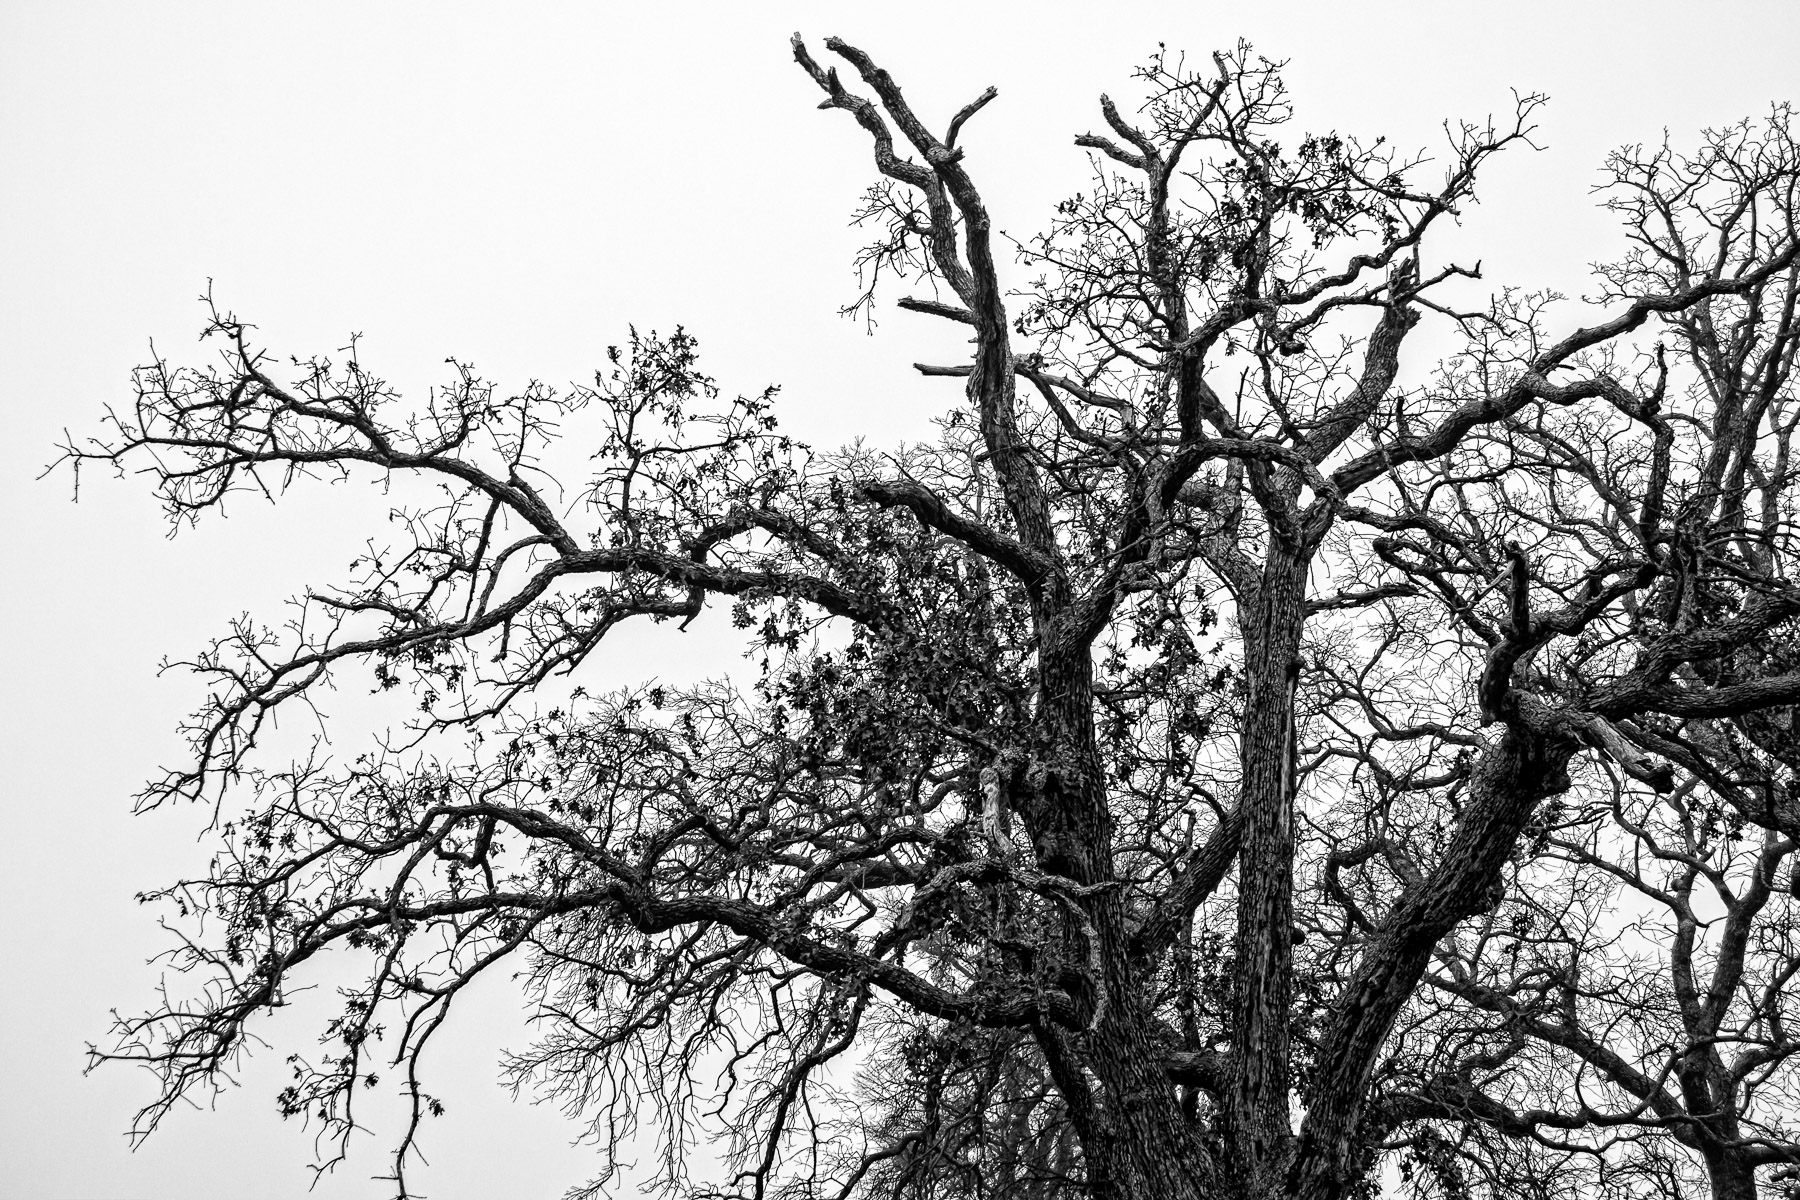 Intricate tree branches rise into the overcast sky at DFW International Airport, Texas.